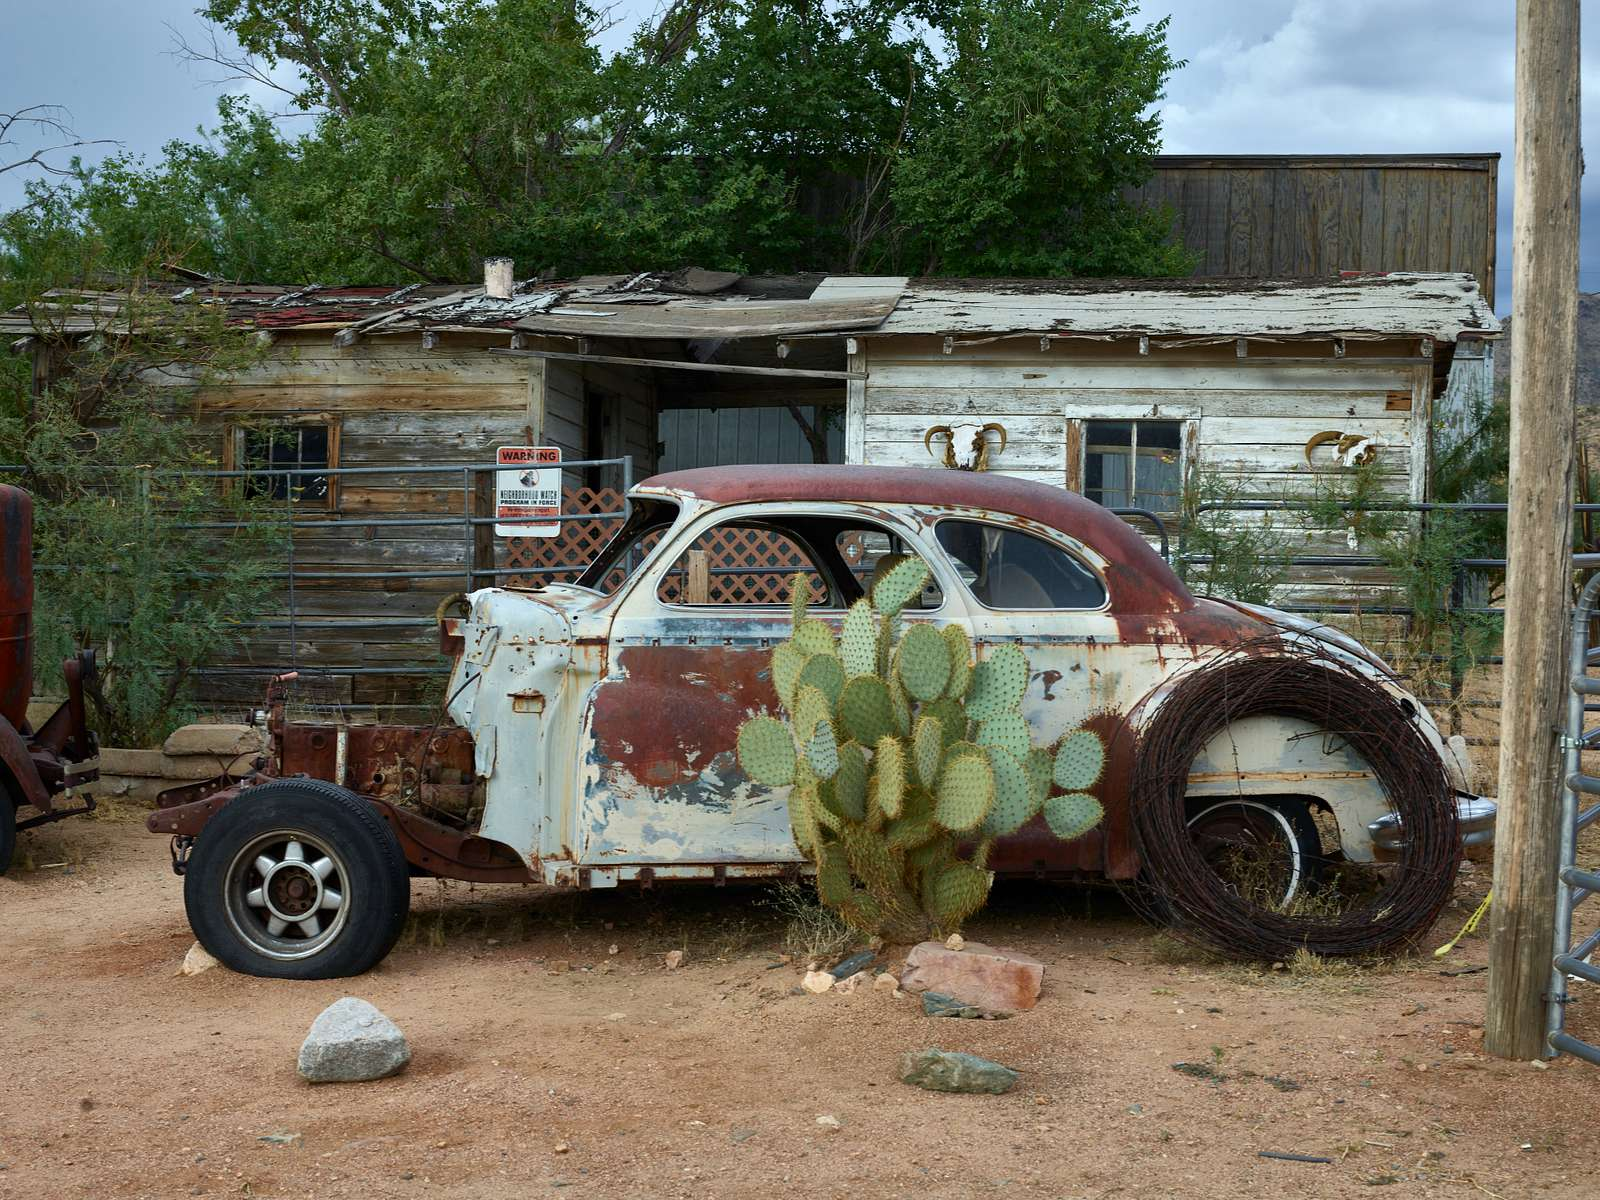 Most, but not all, of an old, rusted car along historic U.S. Route 66 in Hackberry, Arizona